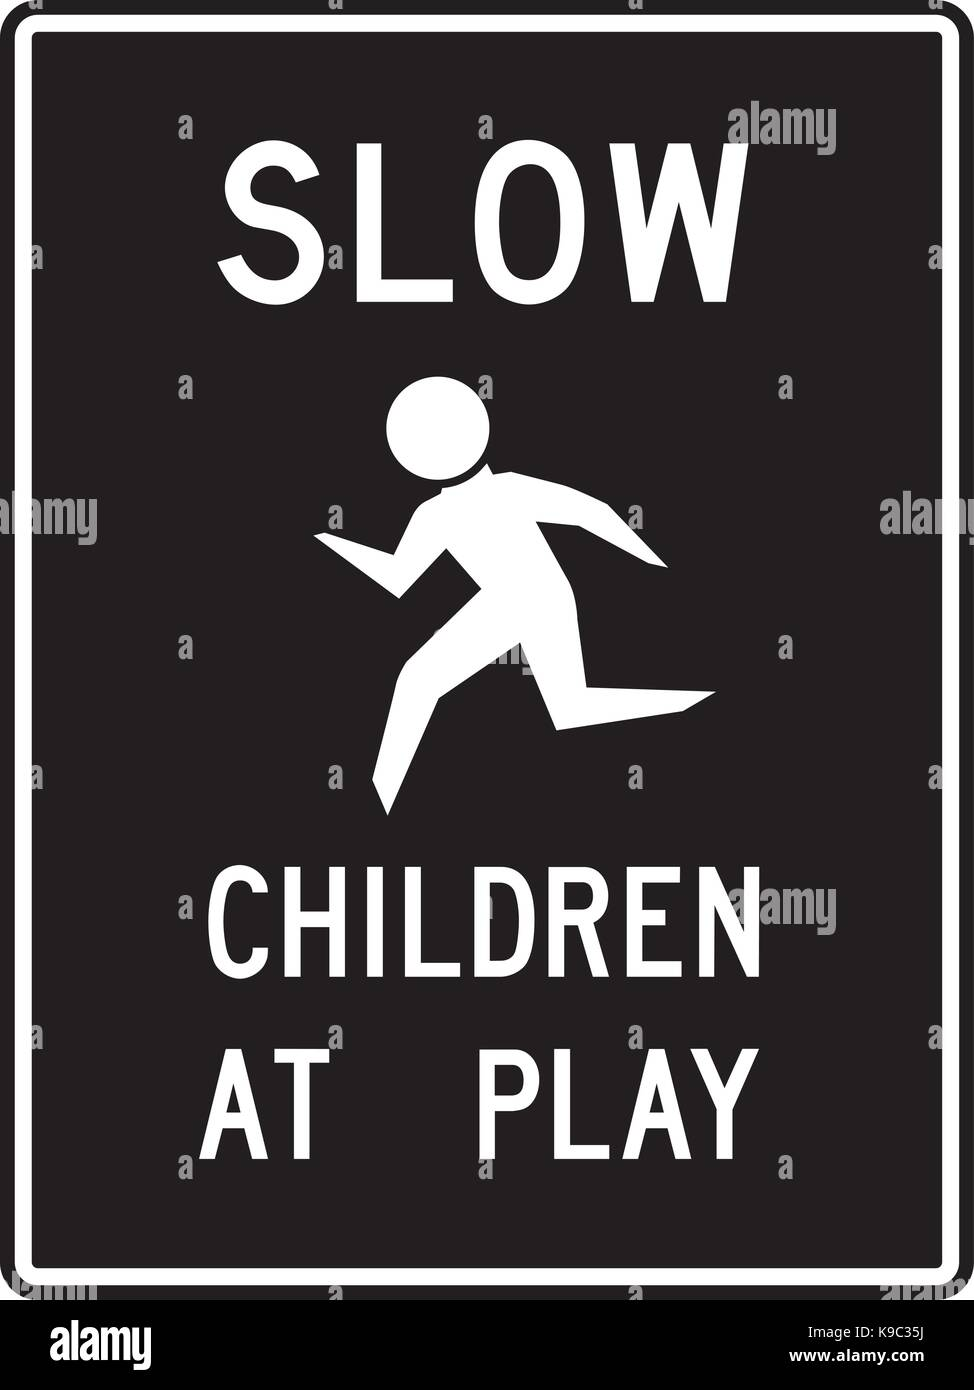 Children at play road information sign - Stock Image